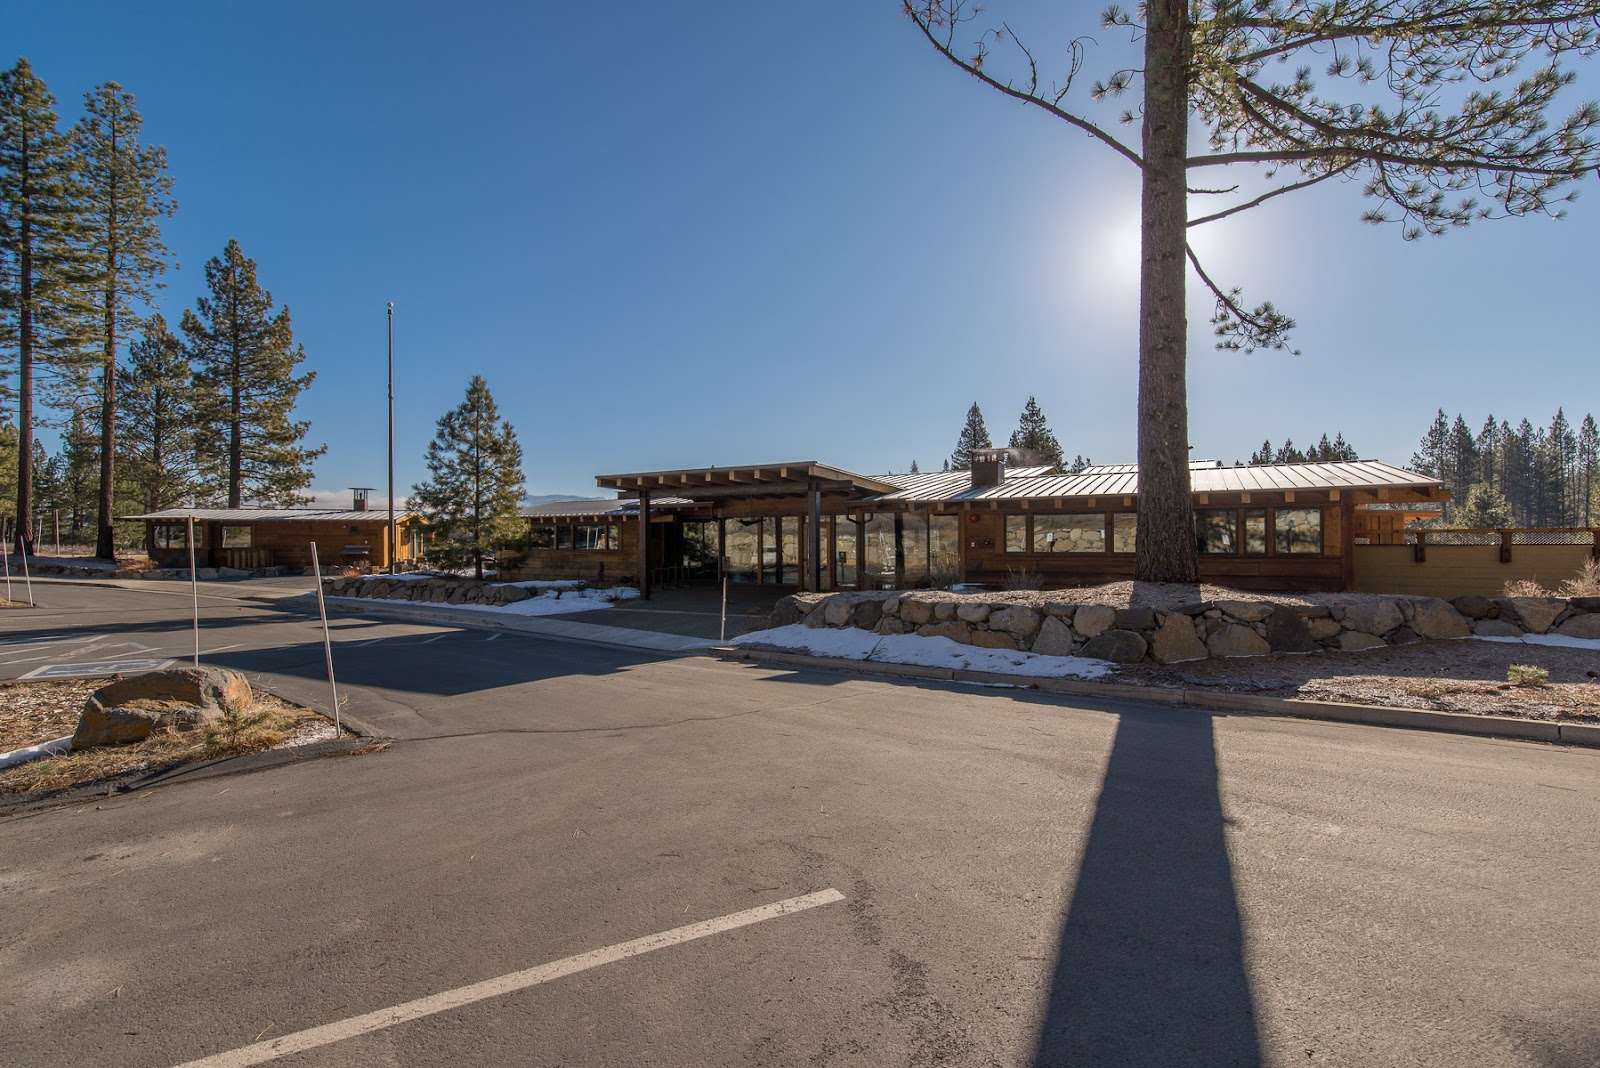 Truckee CA Real Estate Properties for Sale - This Truckee CA lot for sale is perfect for either your custom-build main home or vacation home.